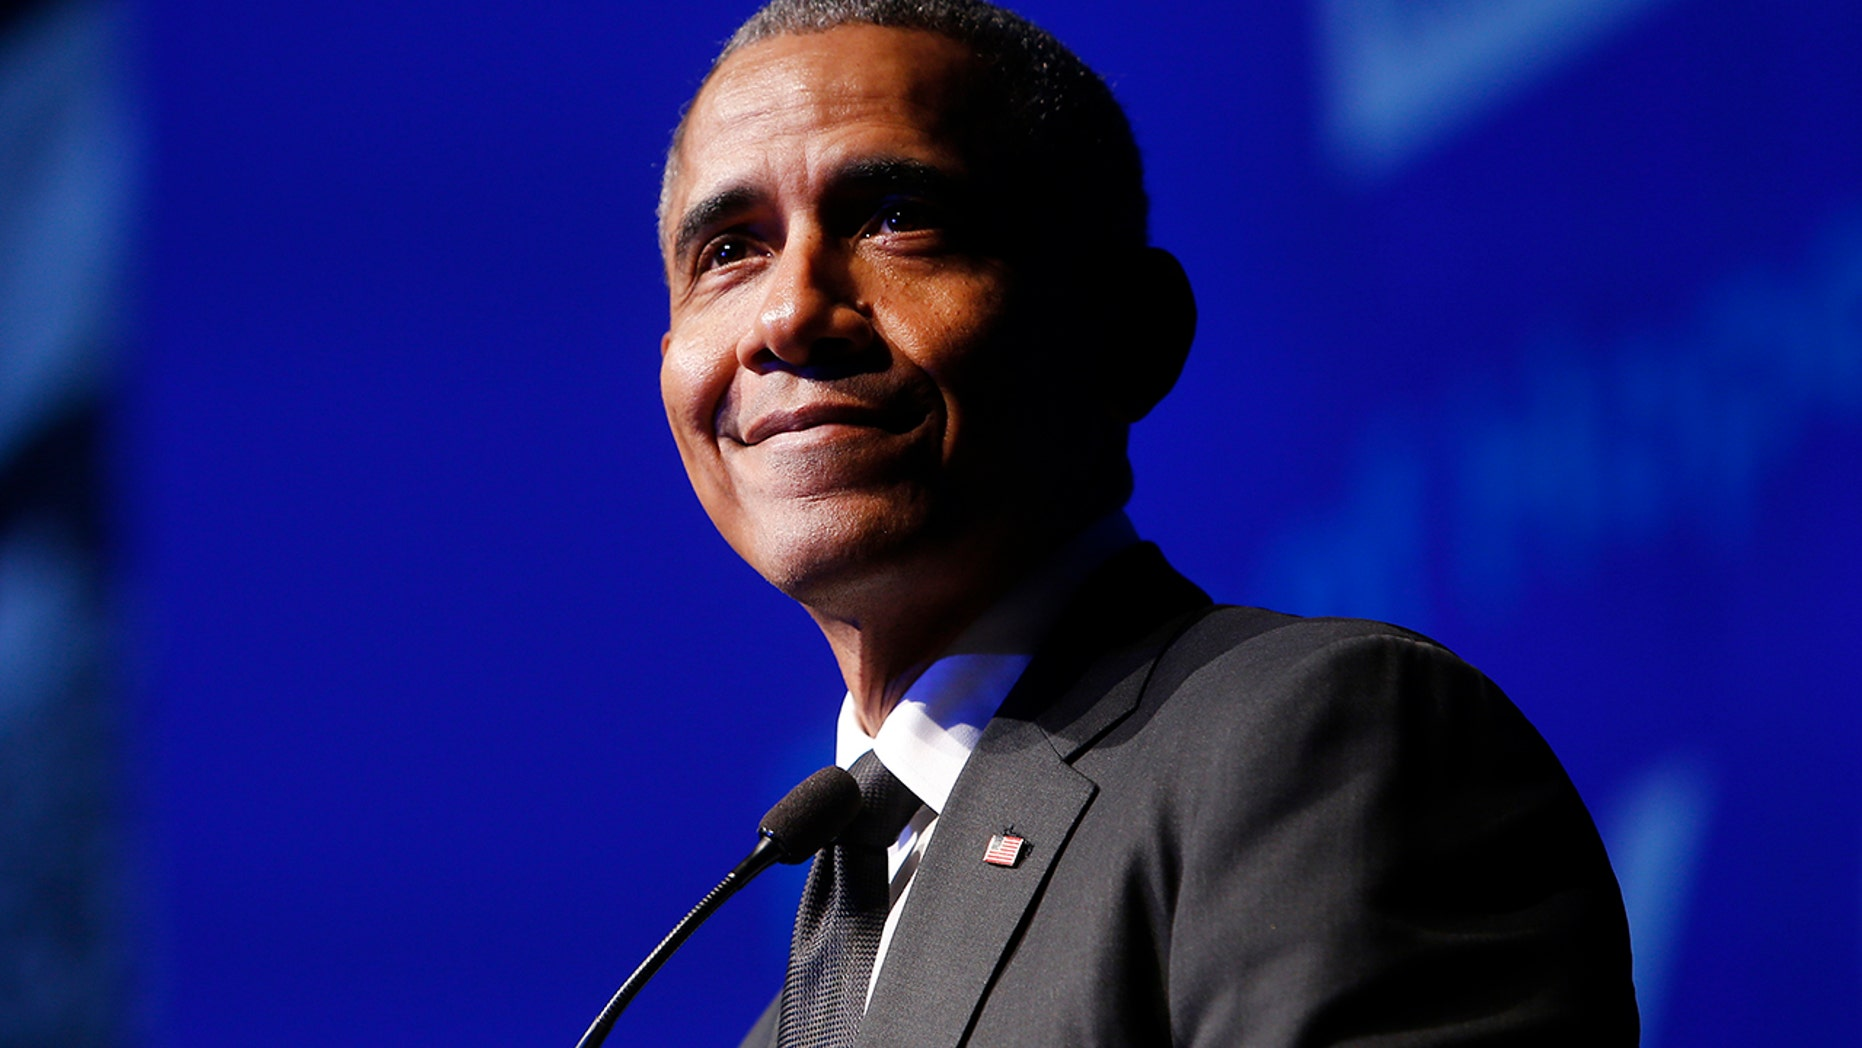 Obama makes debut on Billboard chart with 'Hamilton' collaboration